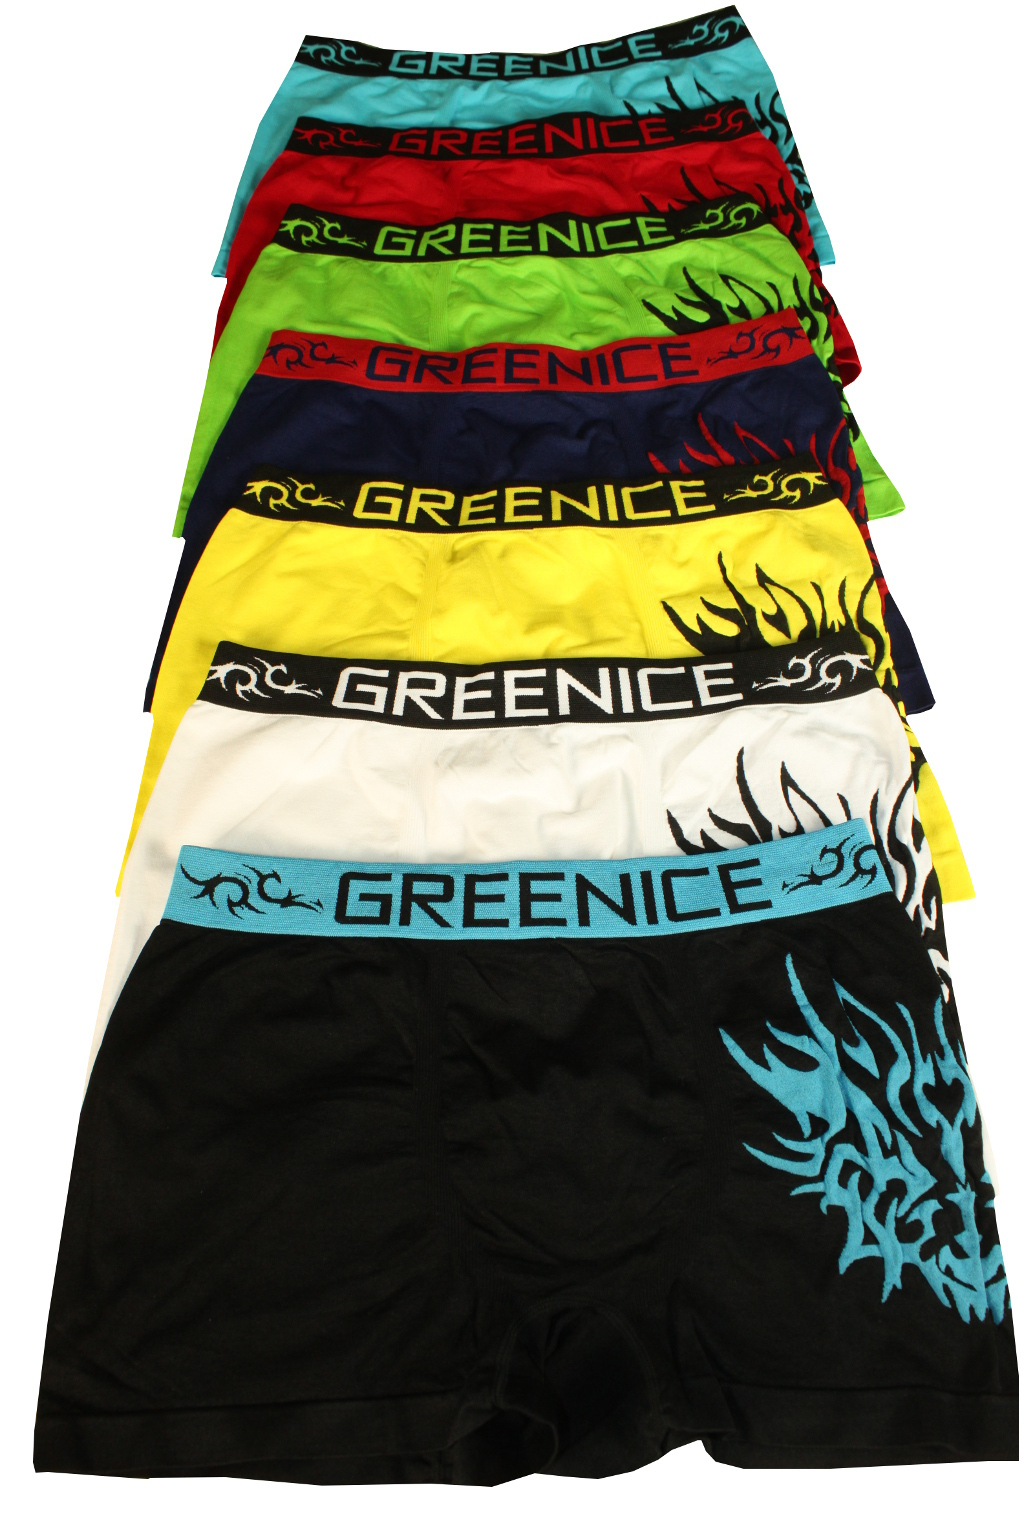 Greenice Fire boxerky - 3pack L MIX